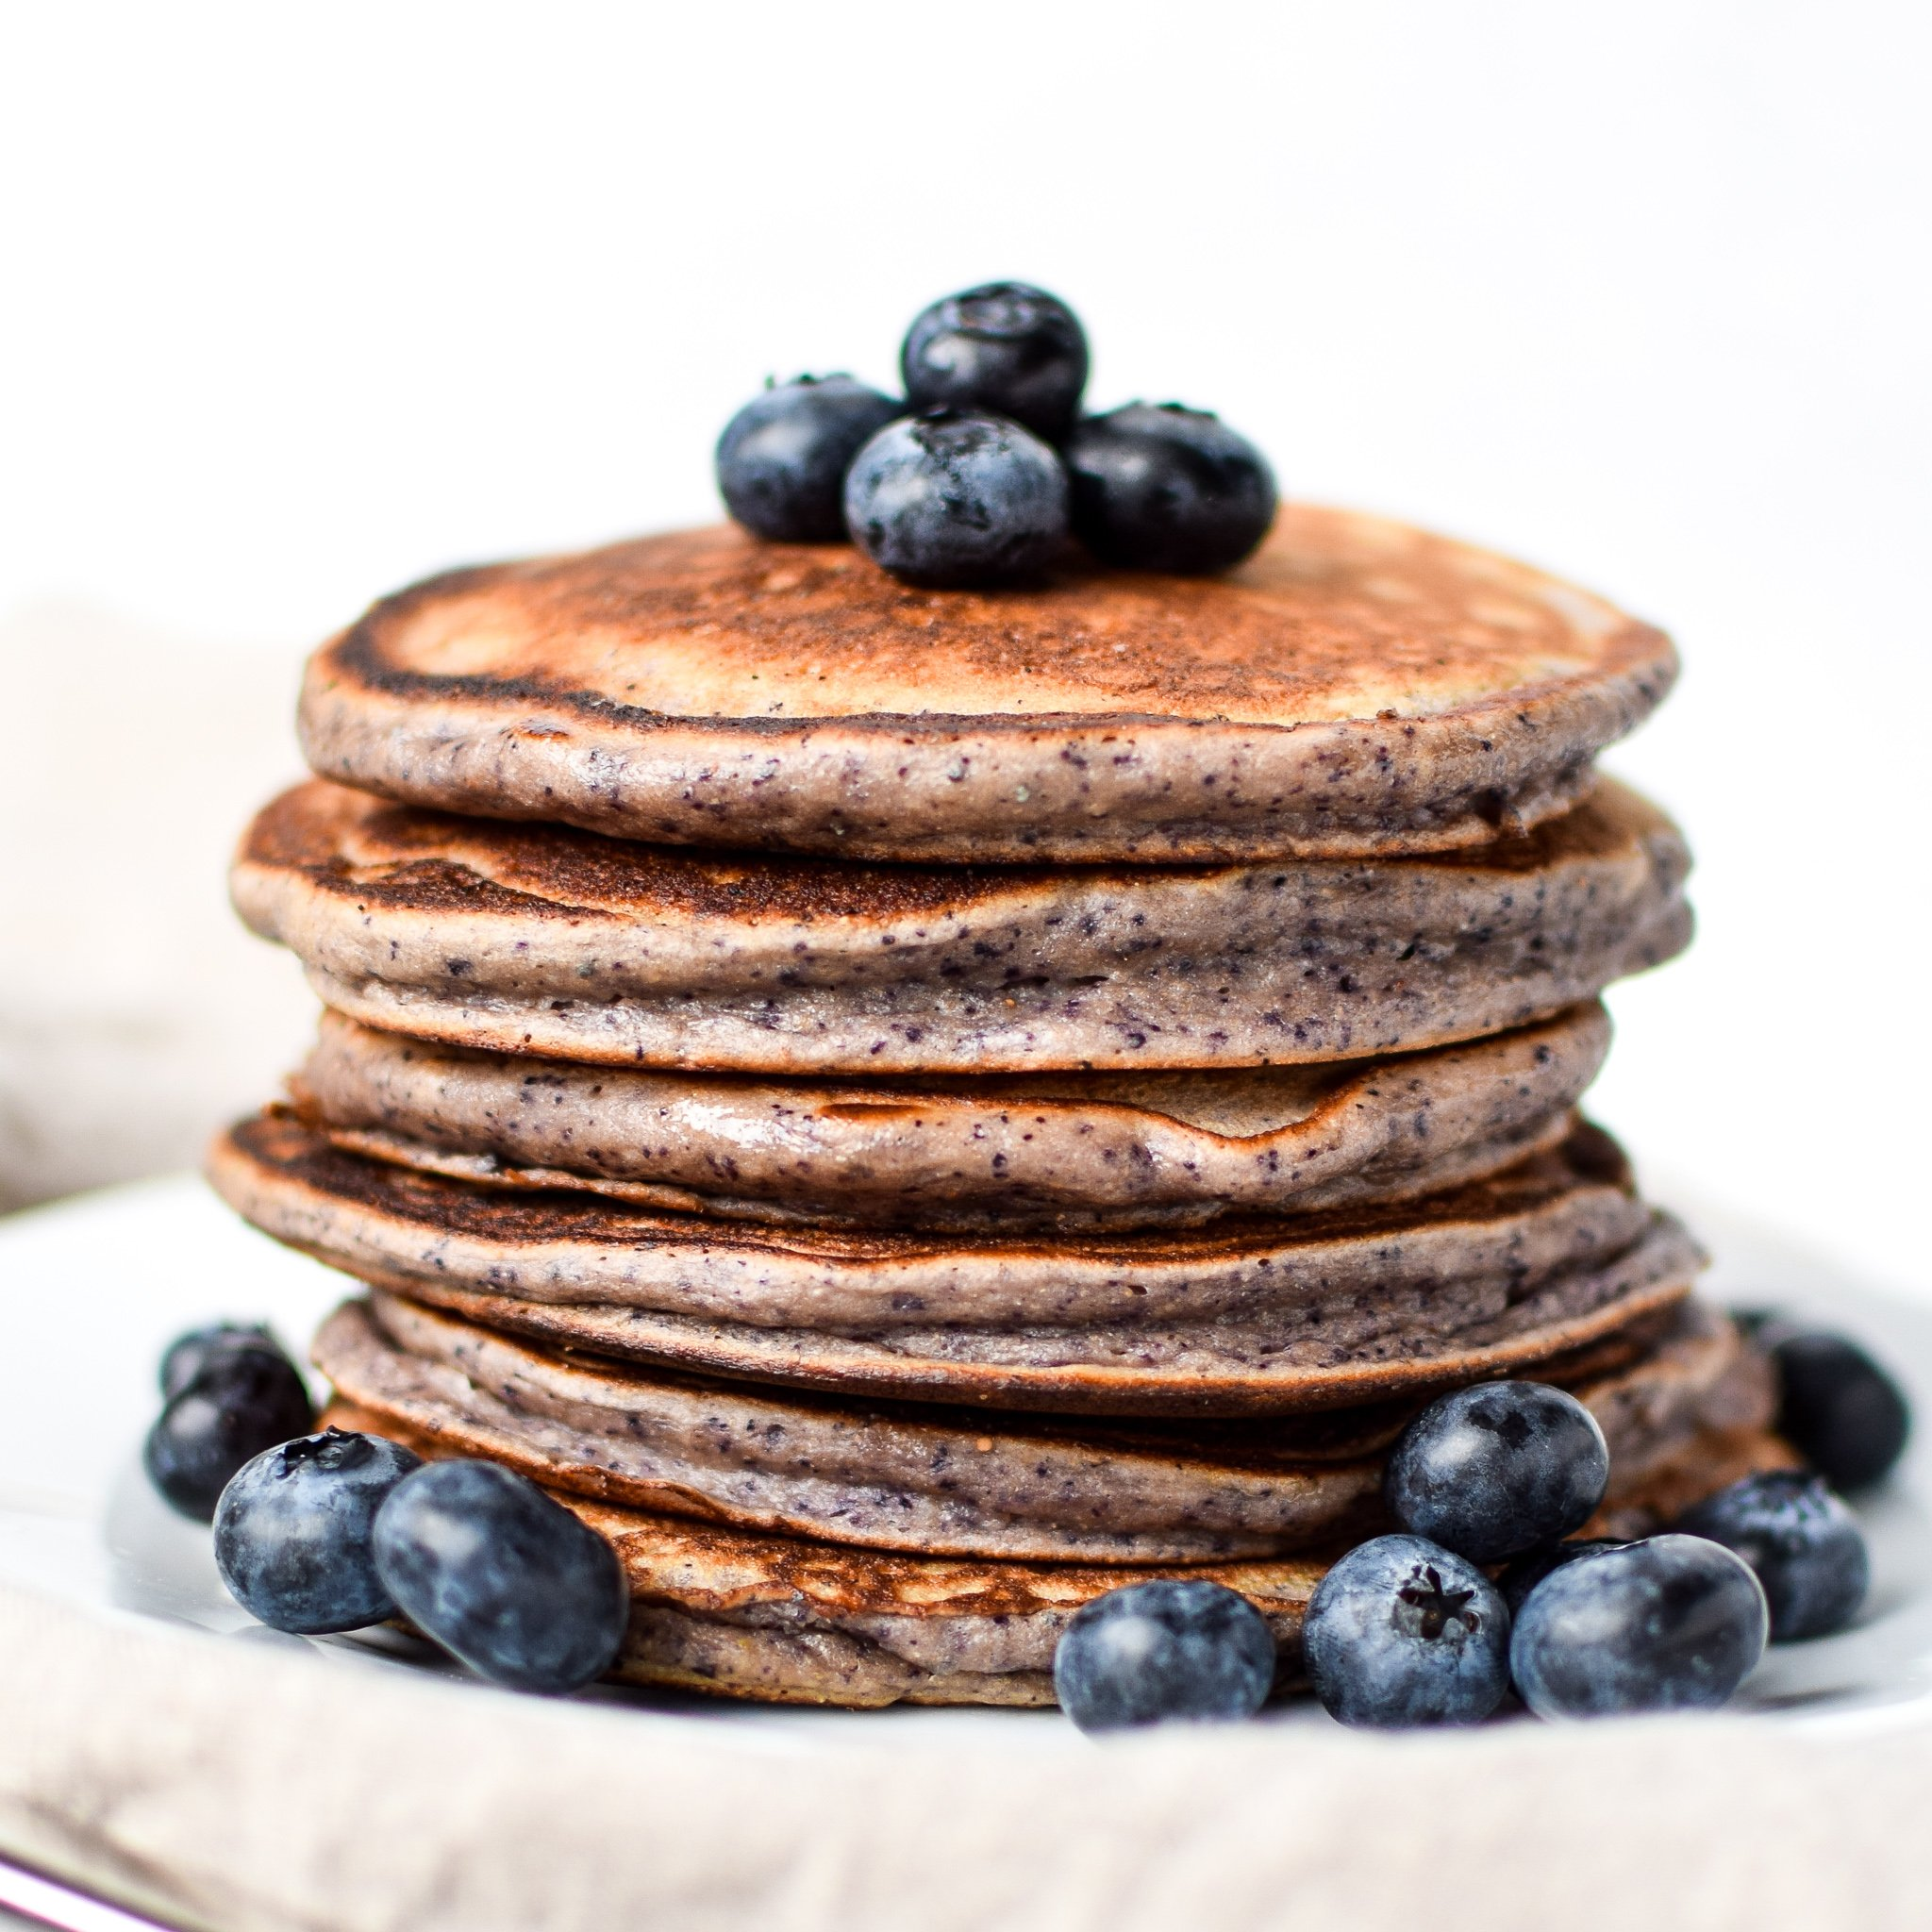 Lemon Poppy Seed Blueberry Protein Pancakes - Your favorite Lemon Blueberry muffin now in pancake form! Try meal prepping these delicious pancakes made with Kodiak Cakes! - ProjectMealPlan.com